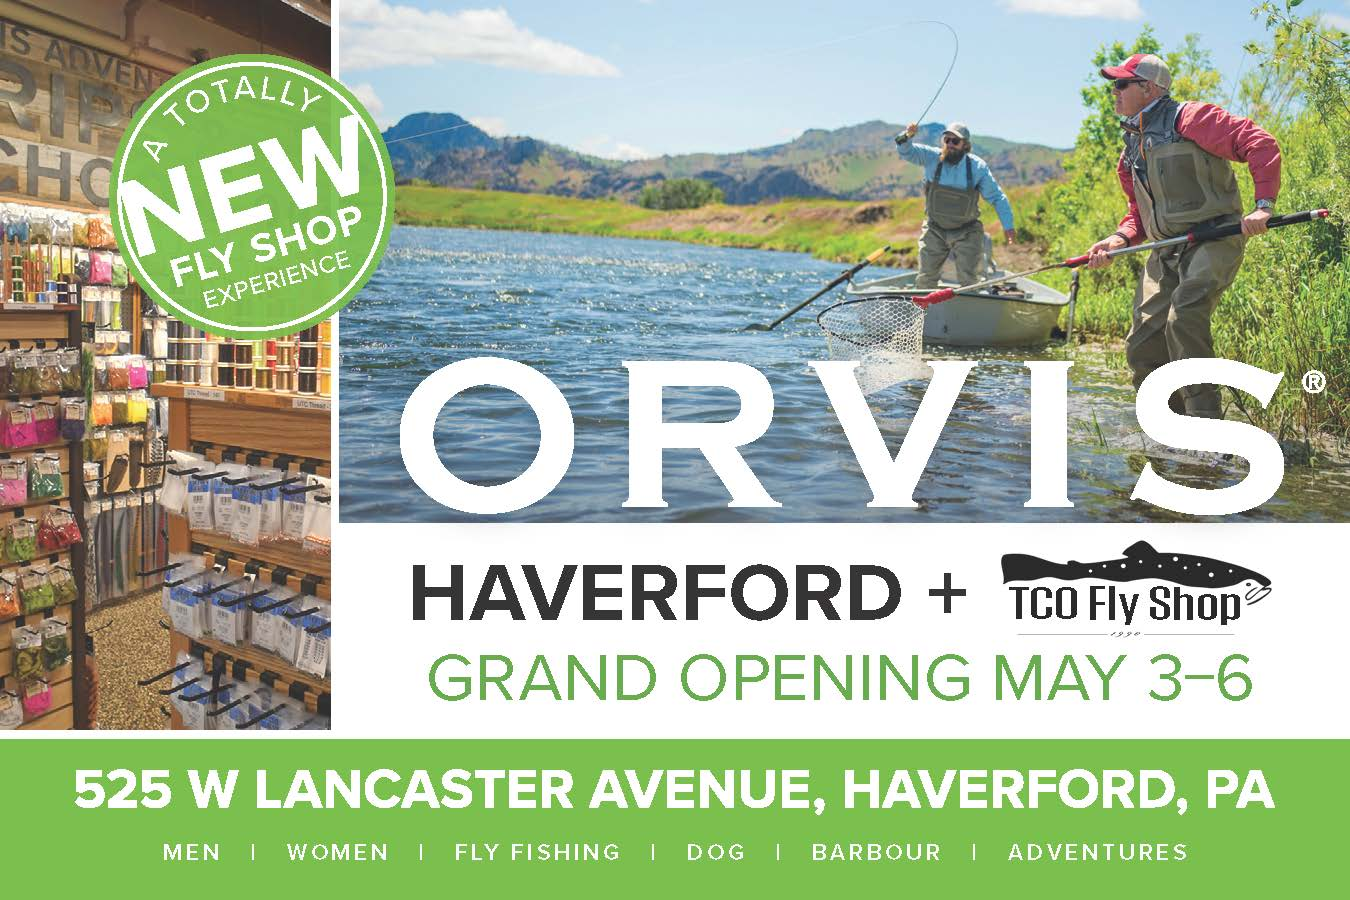 Orvis and TCO Fly Shop Launch Innovative Partnership